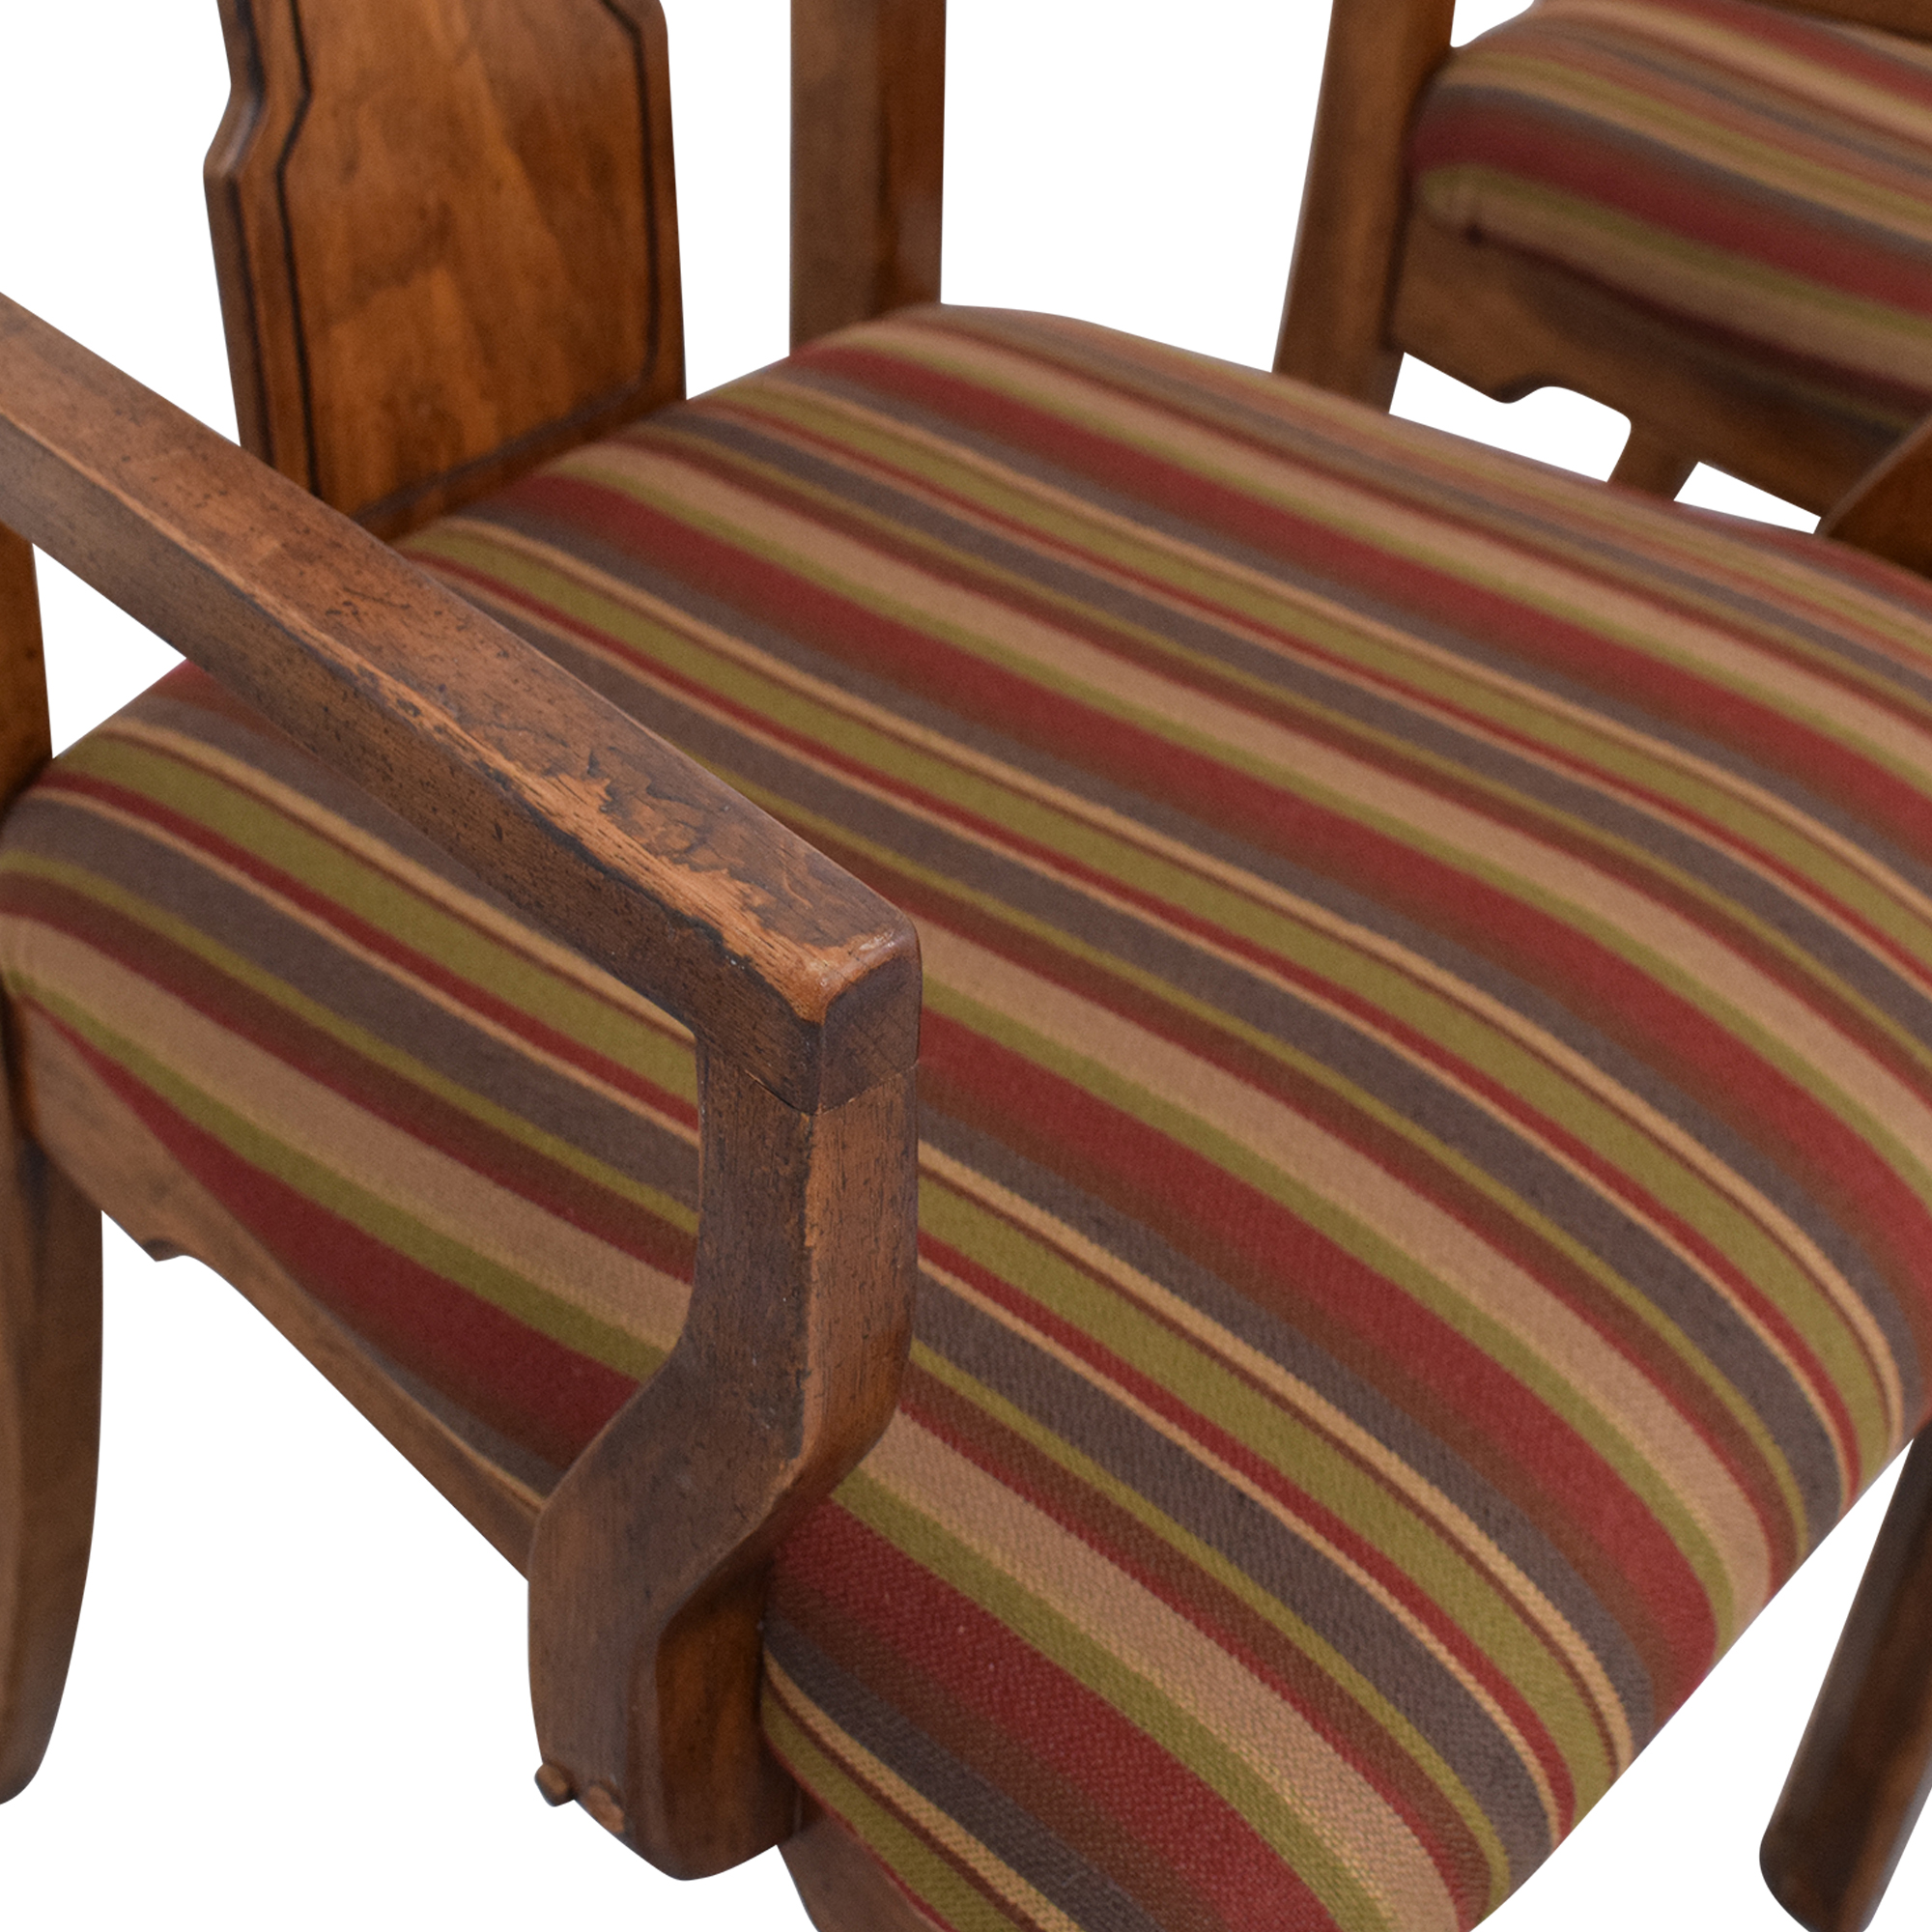 Thomasville Dining Chairs / Chairs